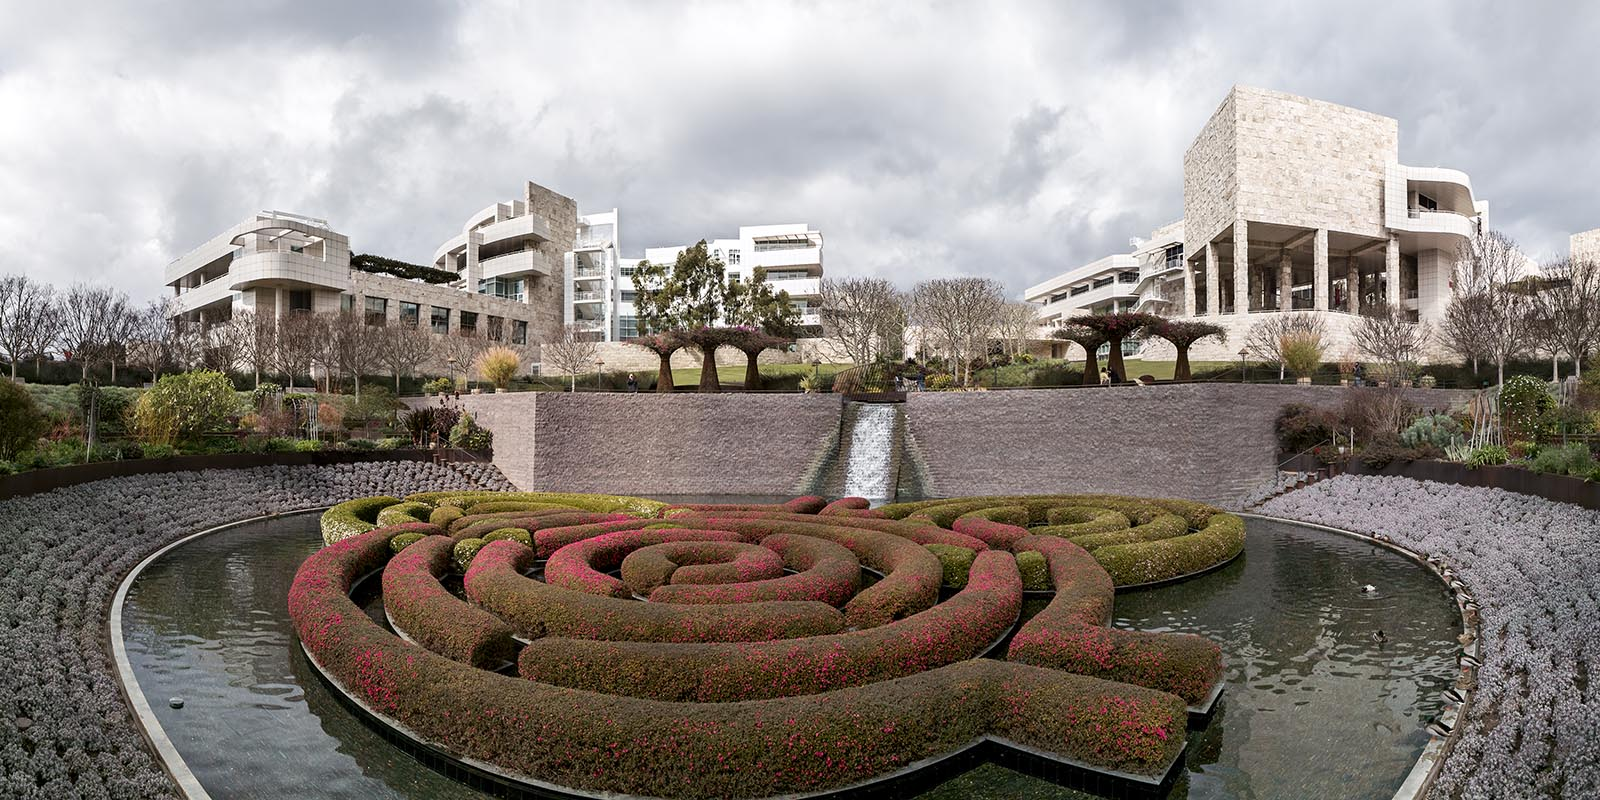 The Getty Center as seen from the Central Garden